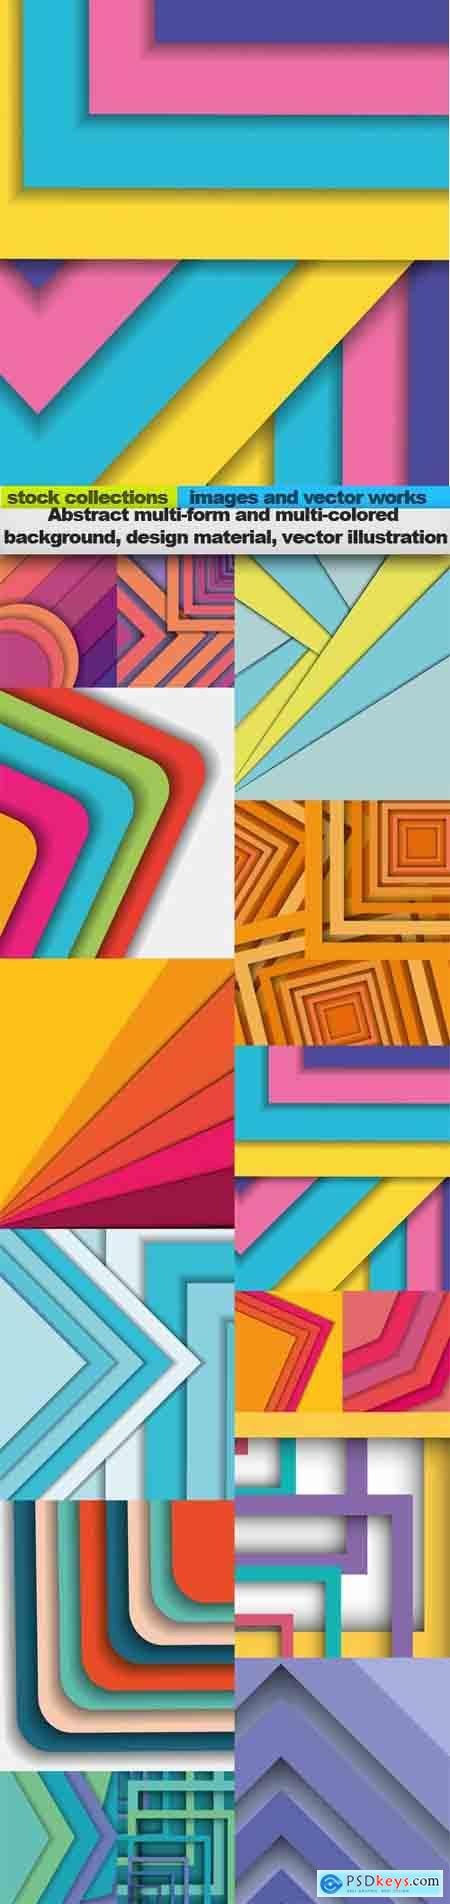 Abstract multi-form and multi-colored background, design material, vector illustration, 15 x EPS